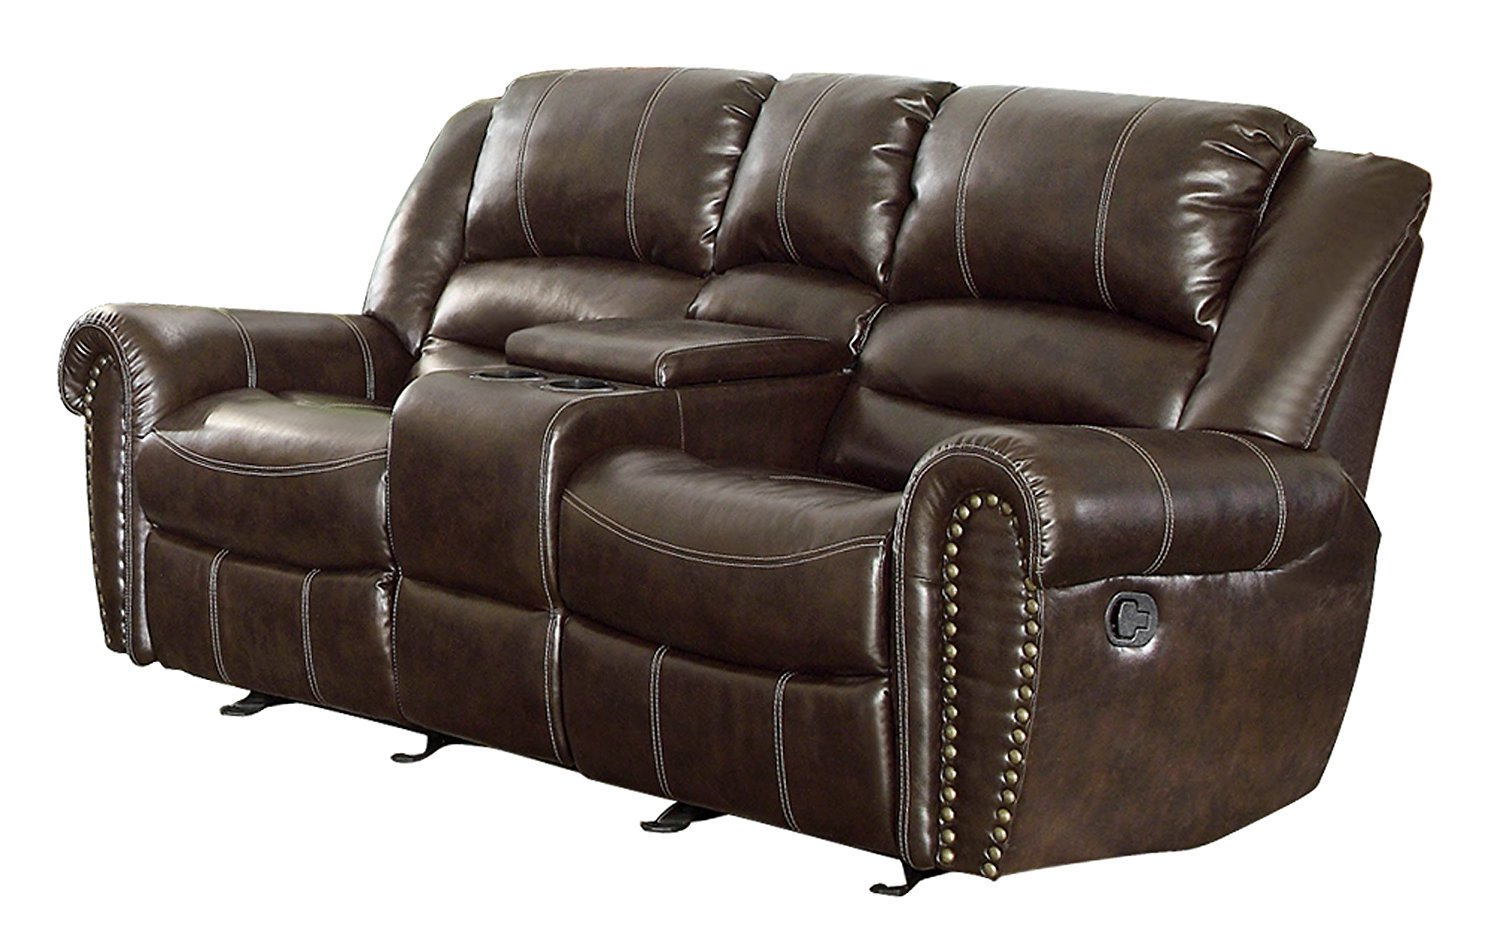 reclining loveseat with center console amazon.com: homelegance 9668brw-2 double glider reclining loveseat with center  console, brown bonded bcxwtno